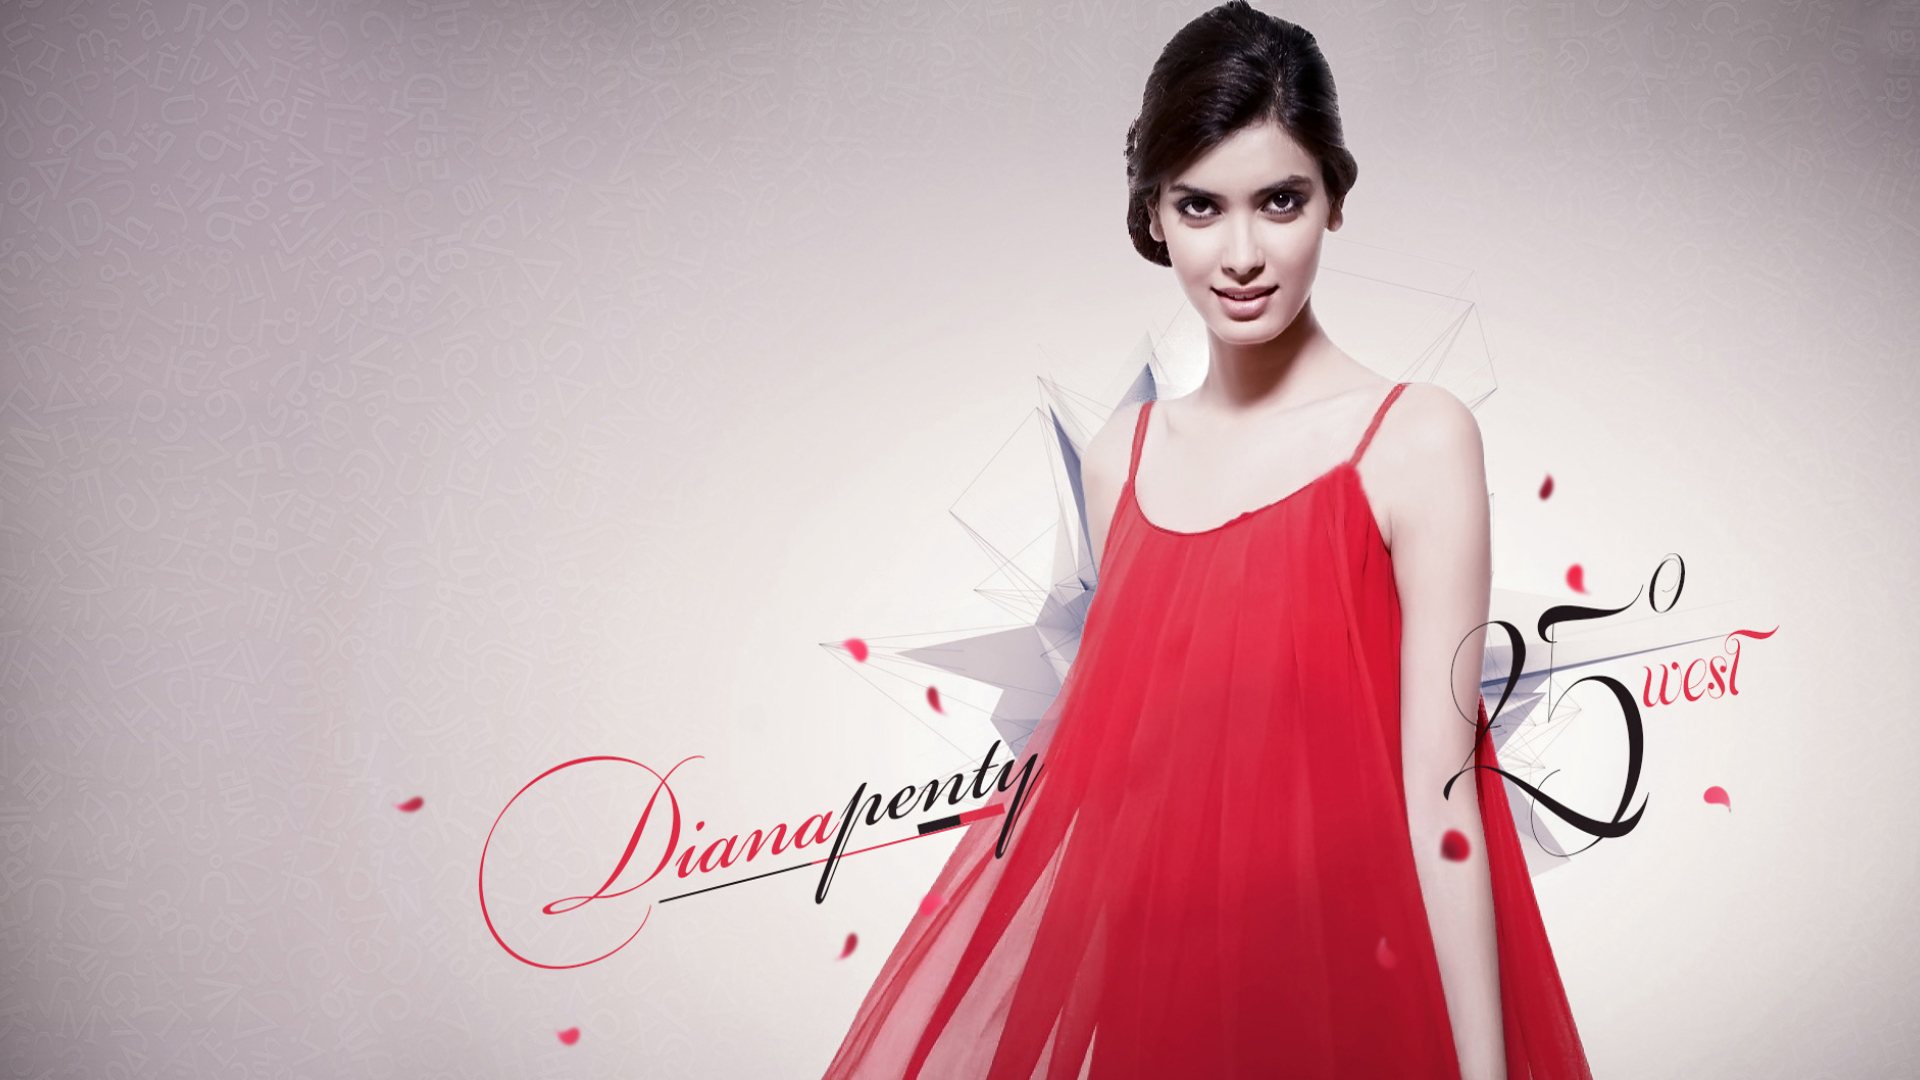 Download Diana Penty In Red 1680x1050 Resolution Full Hd Wallpaper